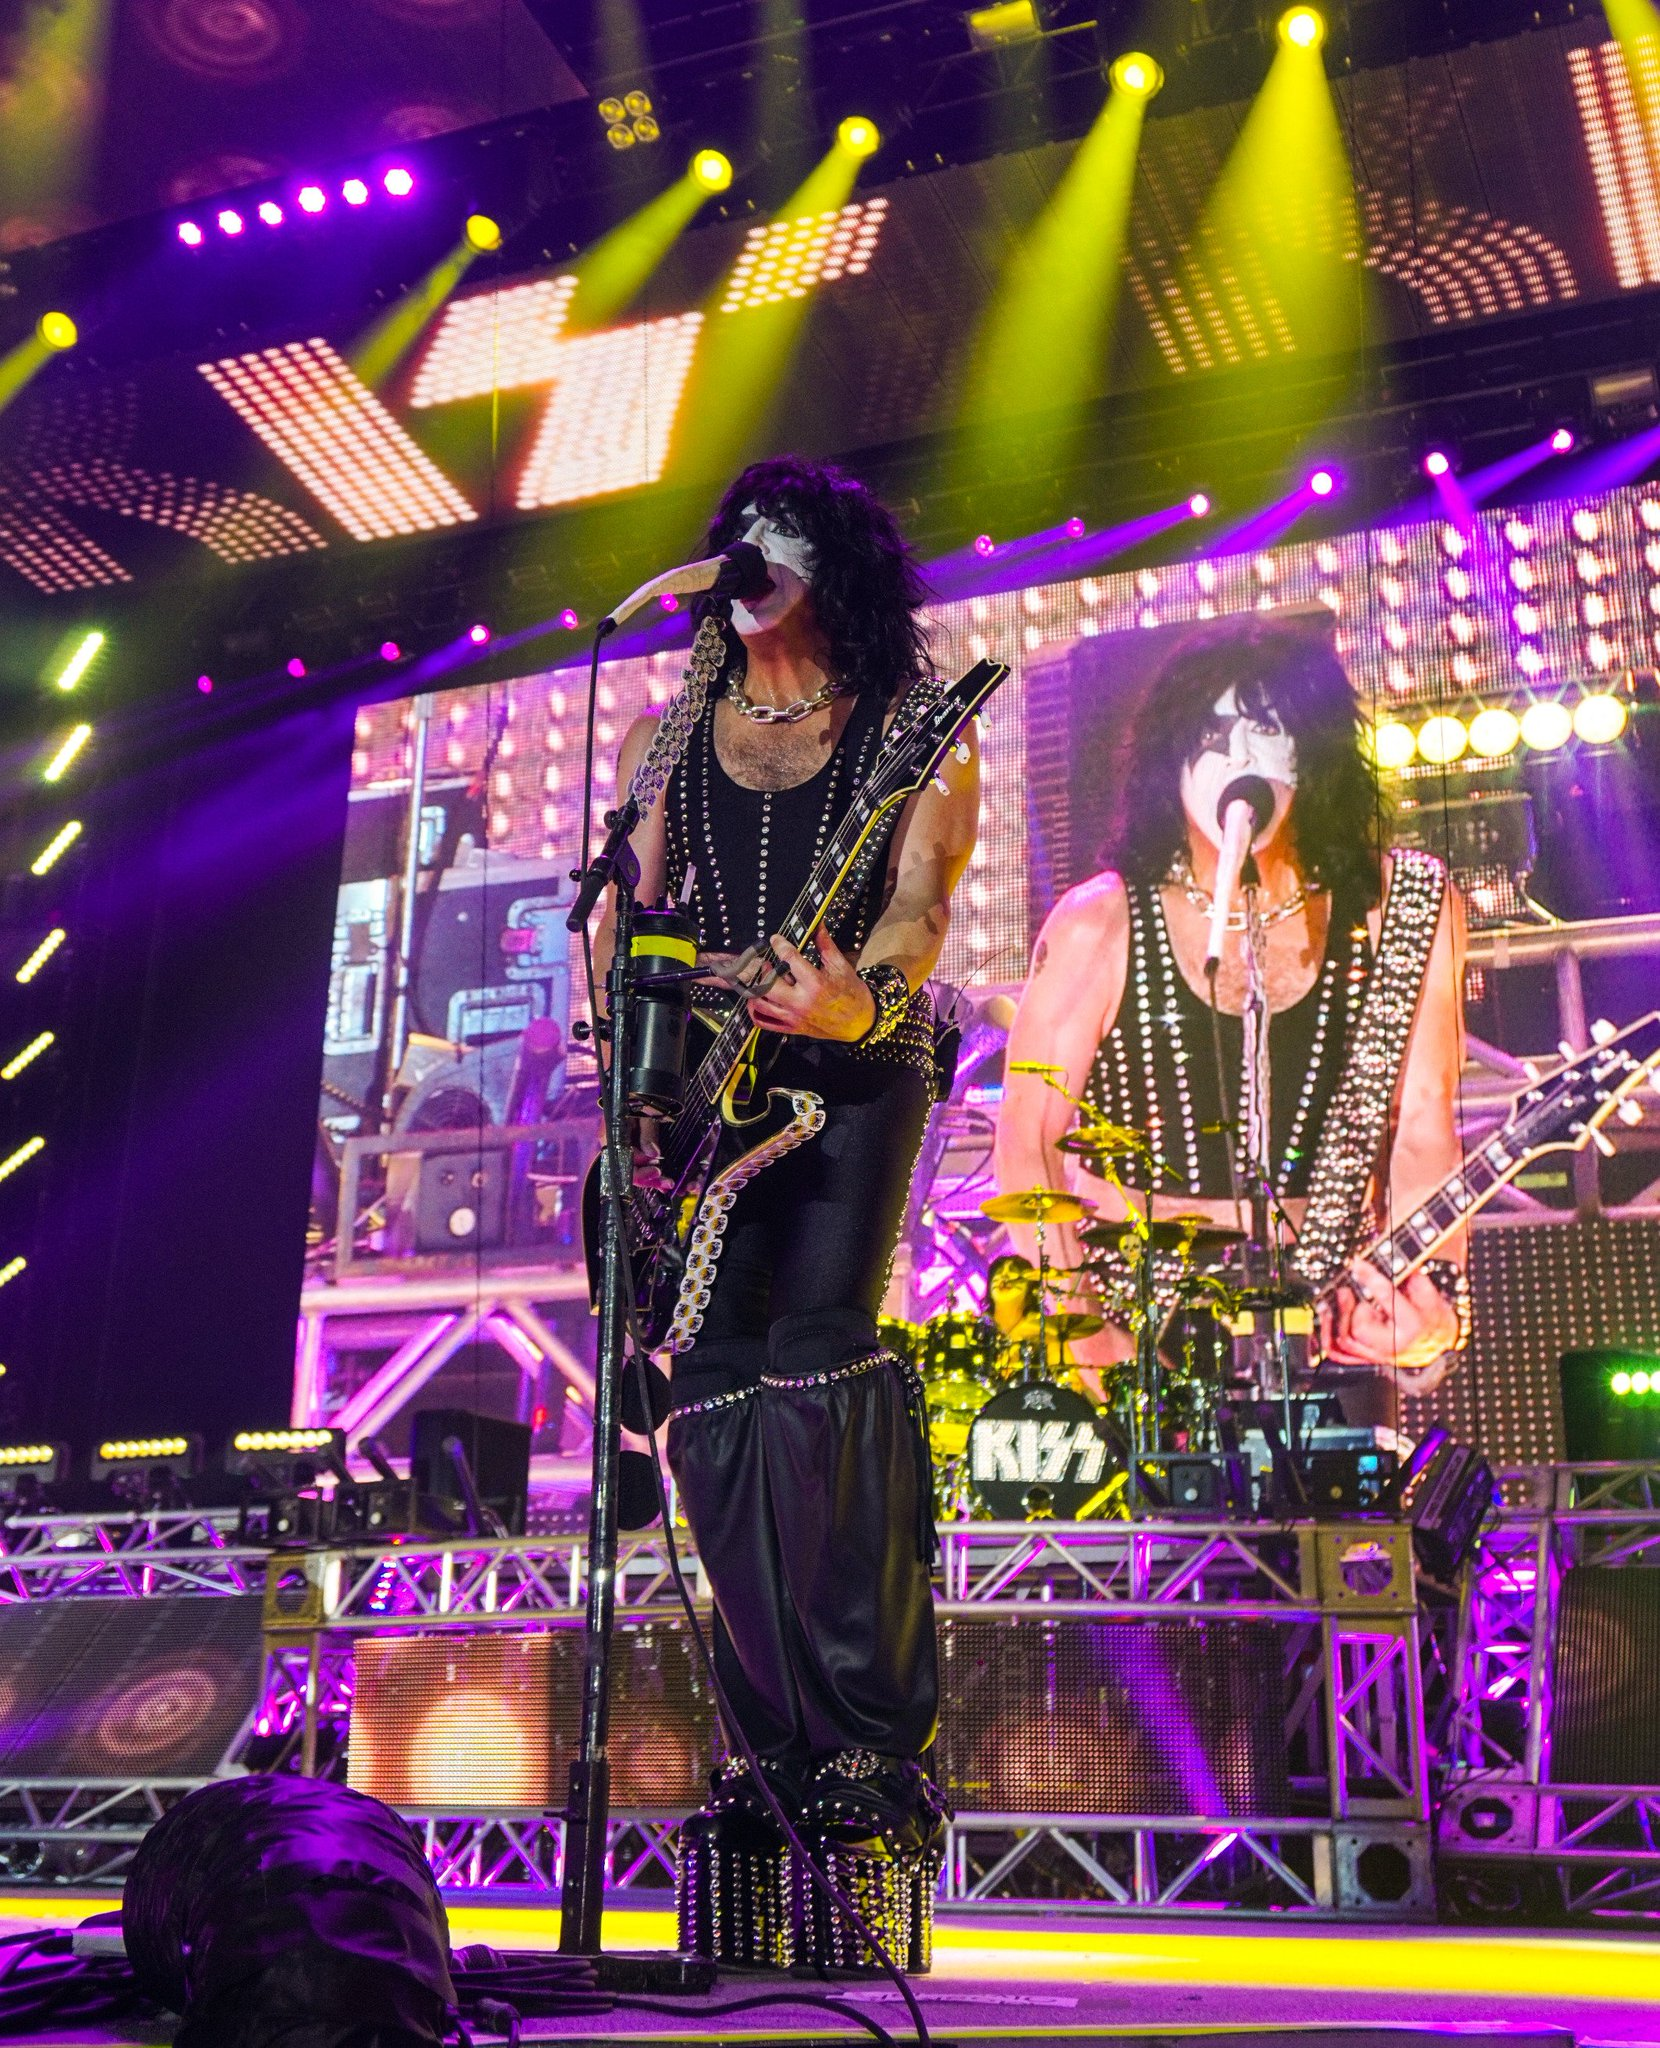 .@PaulStanleyLive belting it out in #Moscow, #Russia during #KISS' Tour opener last night. #KISSWORLD2017 https://t.co/z9dlMX60Lr